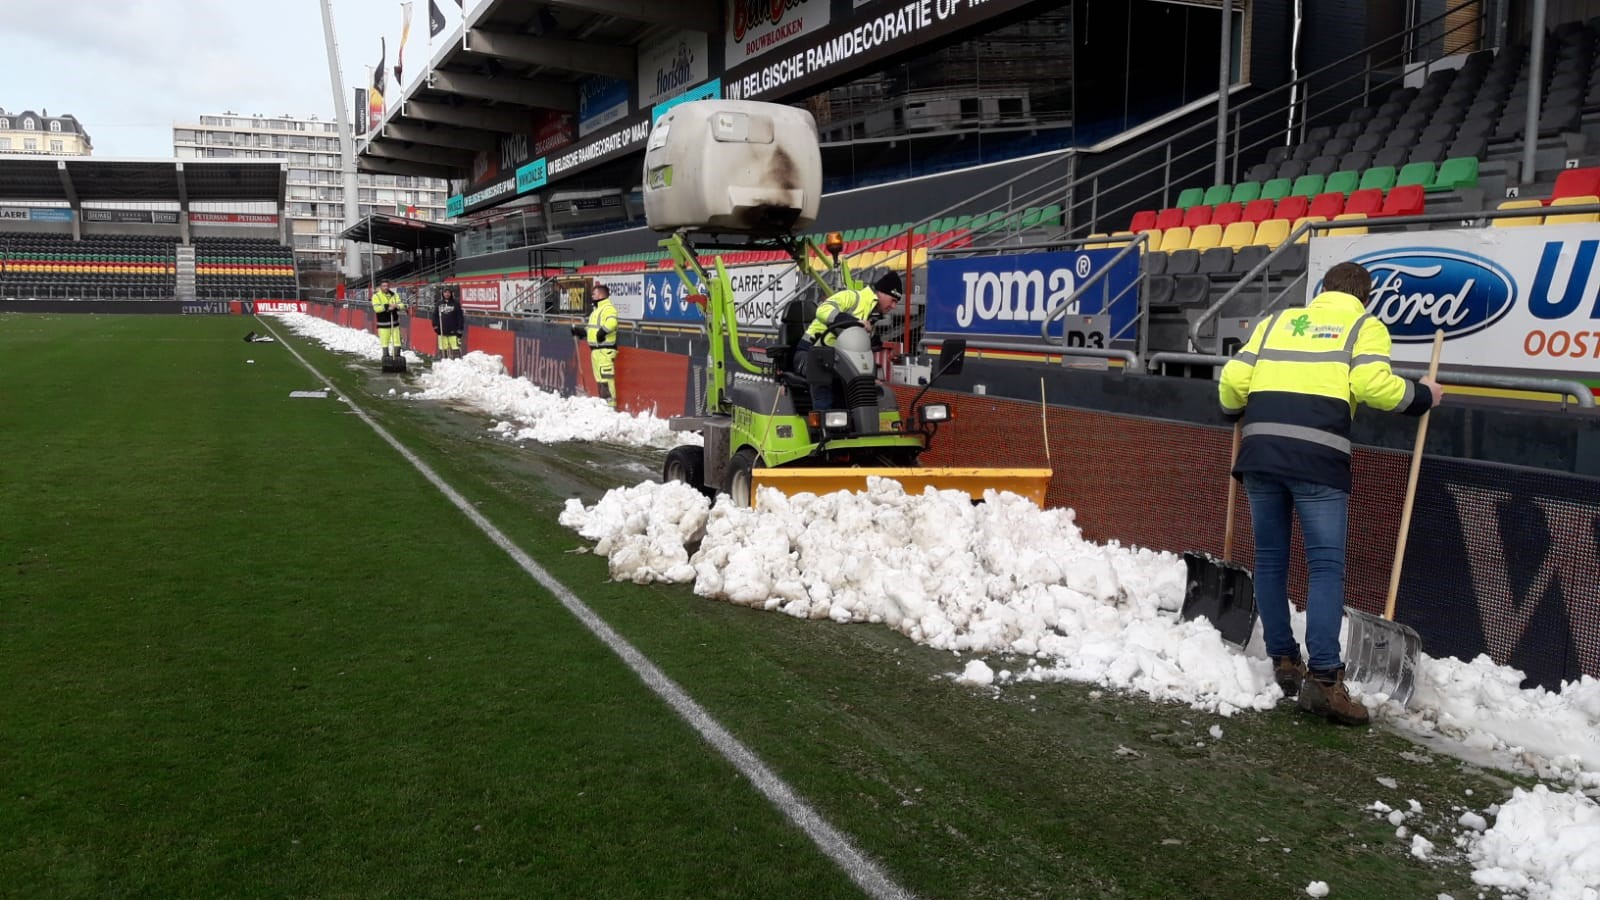 https://mgt.dewitte.be/upload/news/6181/20190130kvoostende-sneeuwna.jpg